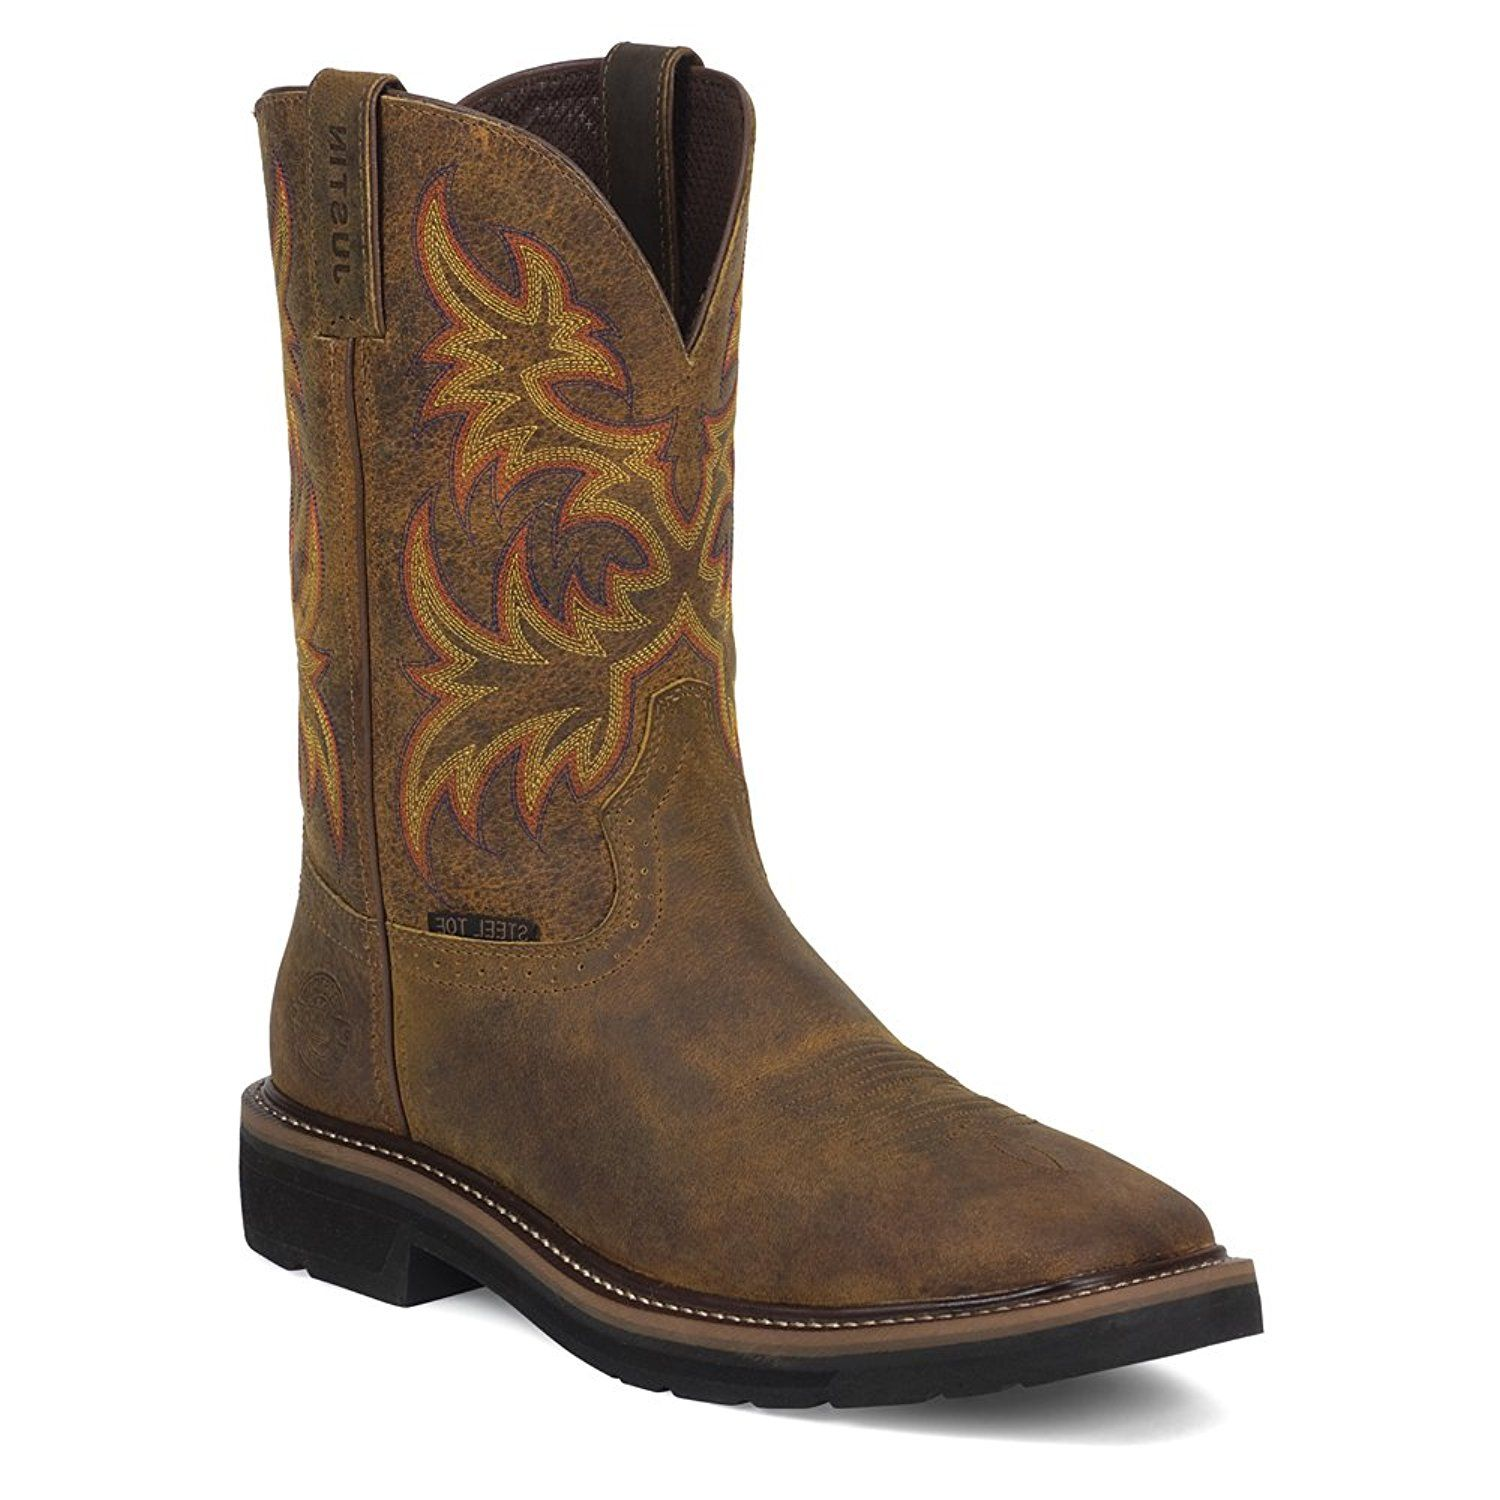 Justin Work Boots Women's Stampede Rugged Steel Toe Western Tan WKL4682 *** More info could be found at the image url.